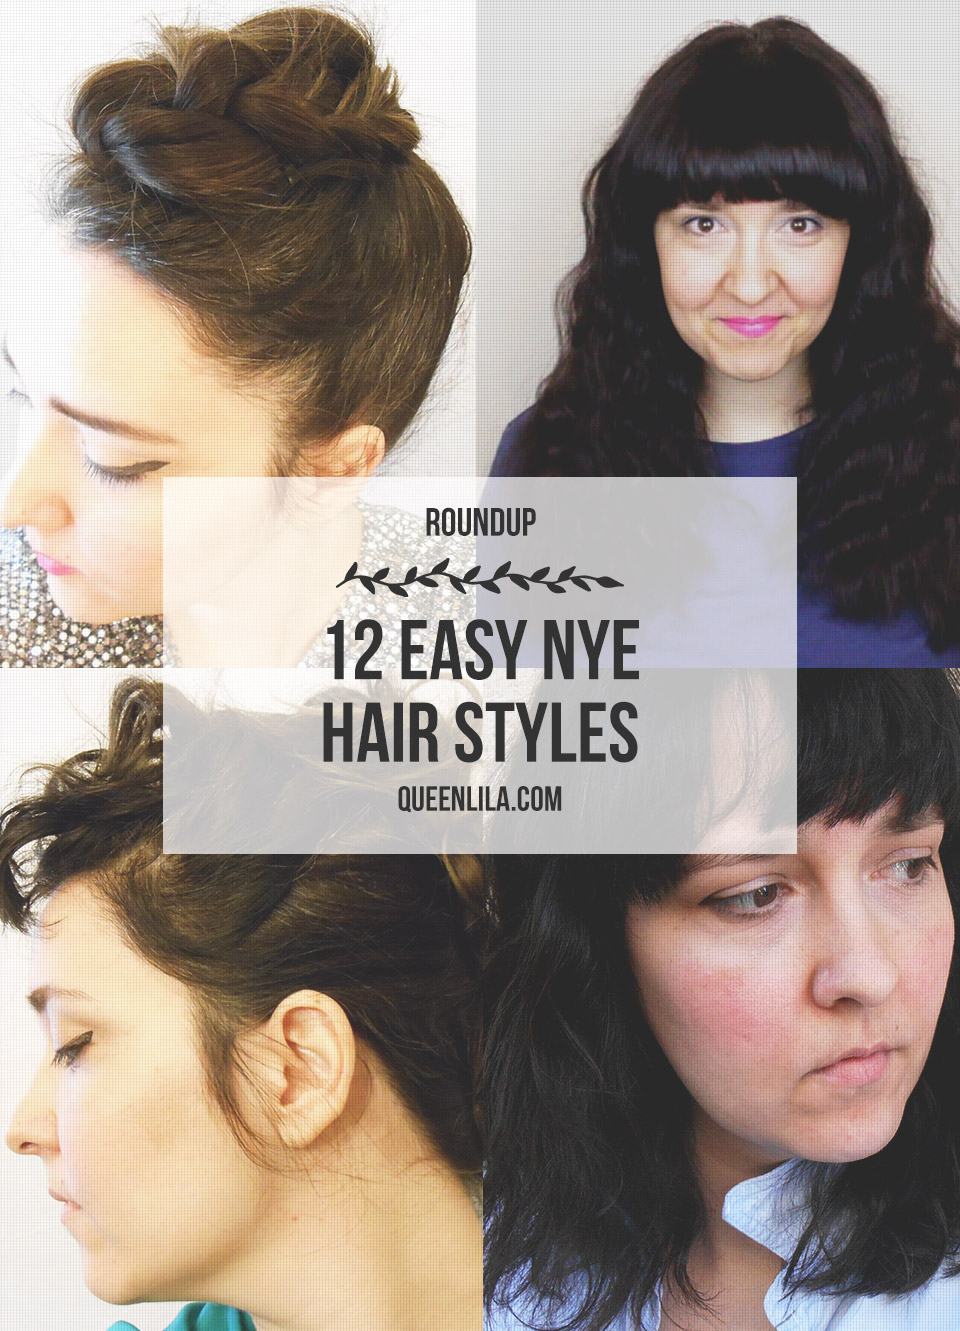 12 Easy Step By Step Natural Eye Make Up Tutorials For: 12 Easy NYE Hair Styles